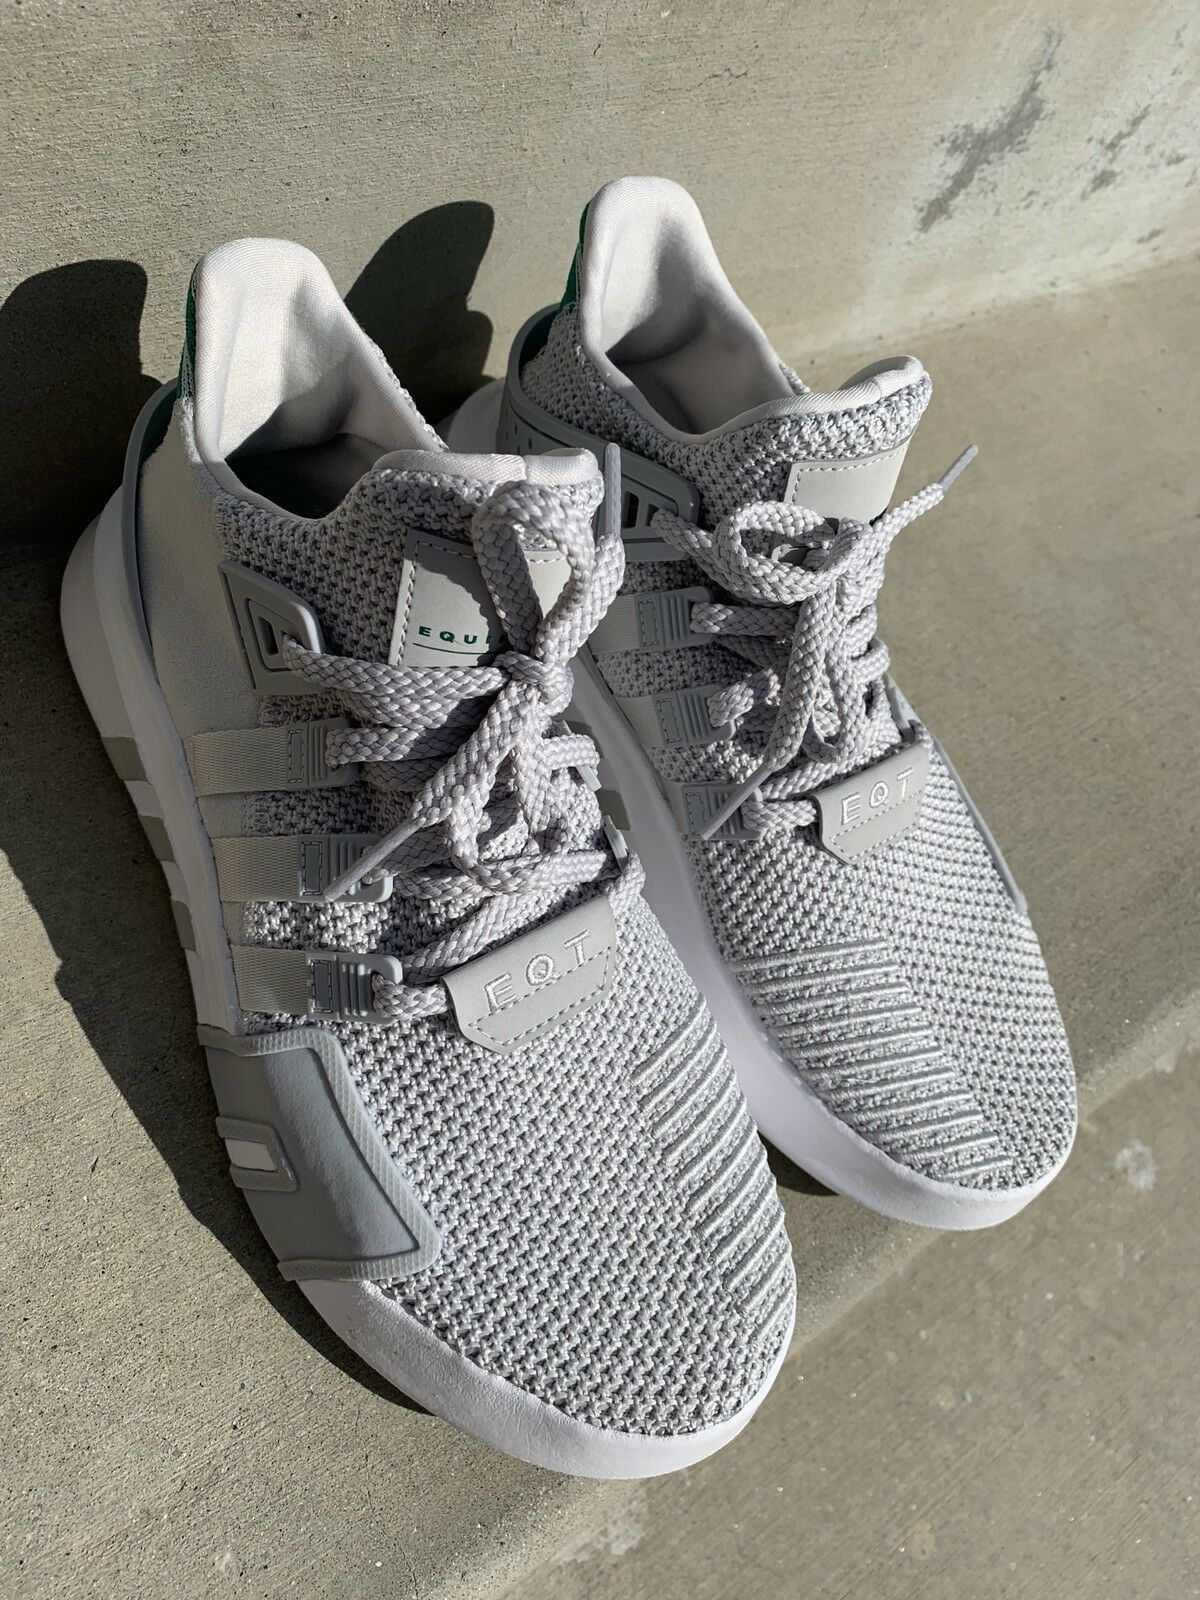 Adidas EQT Bask ADV Mens CQ 2362 Grey Sub Green Knit Athletic shoes Size 7